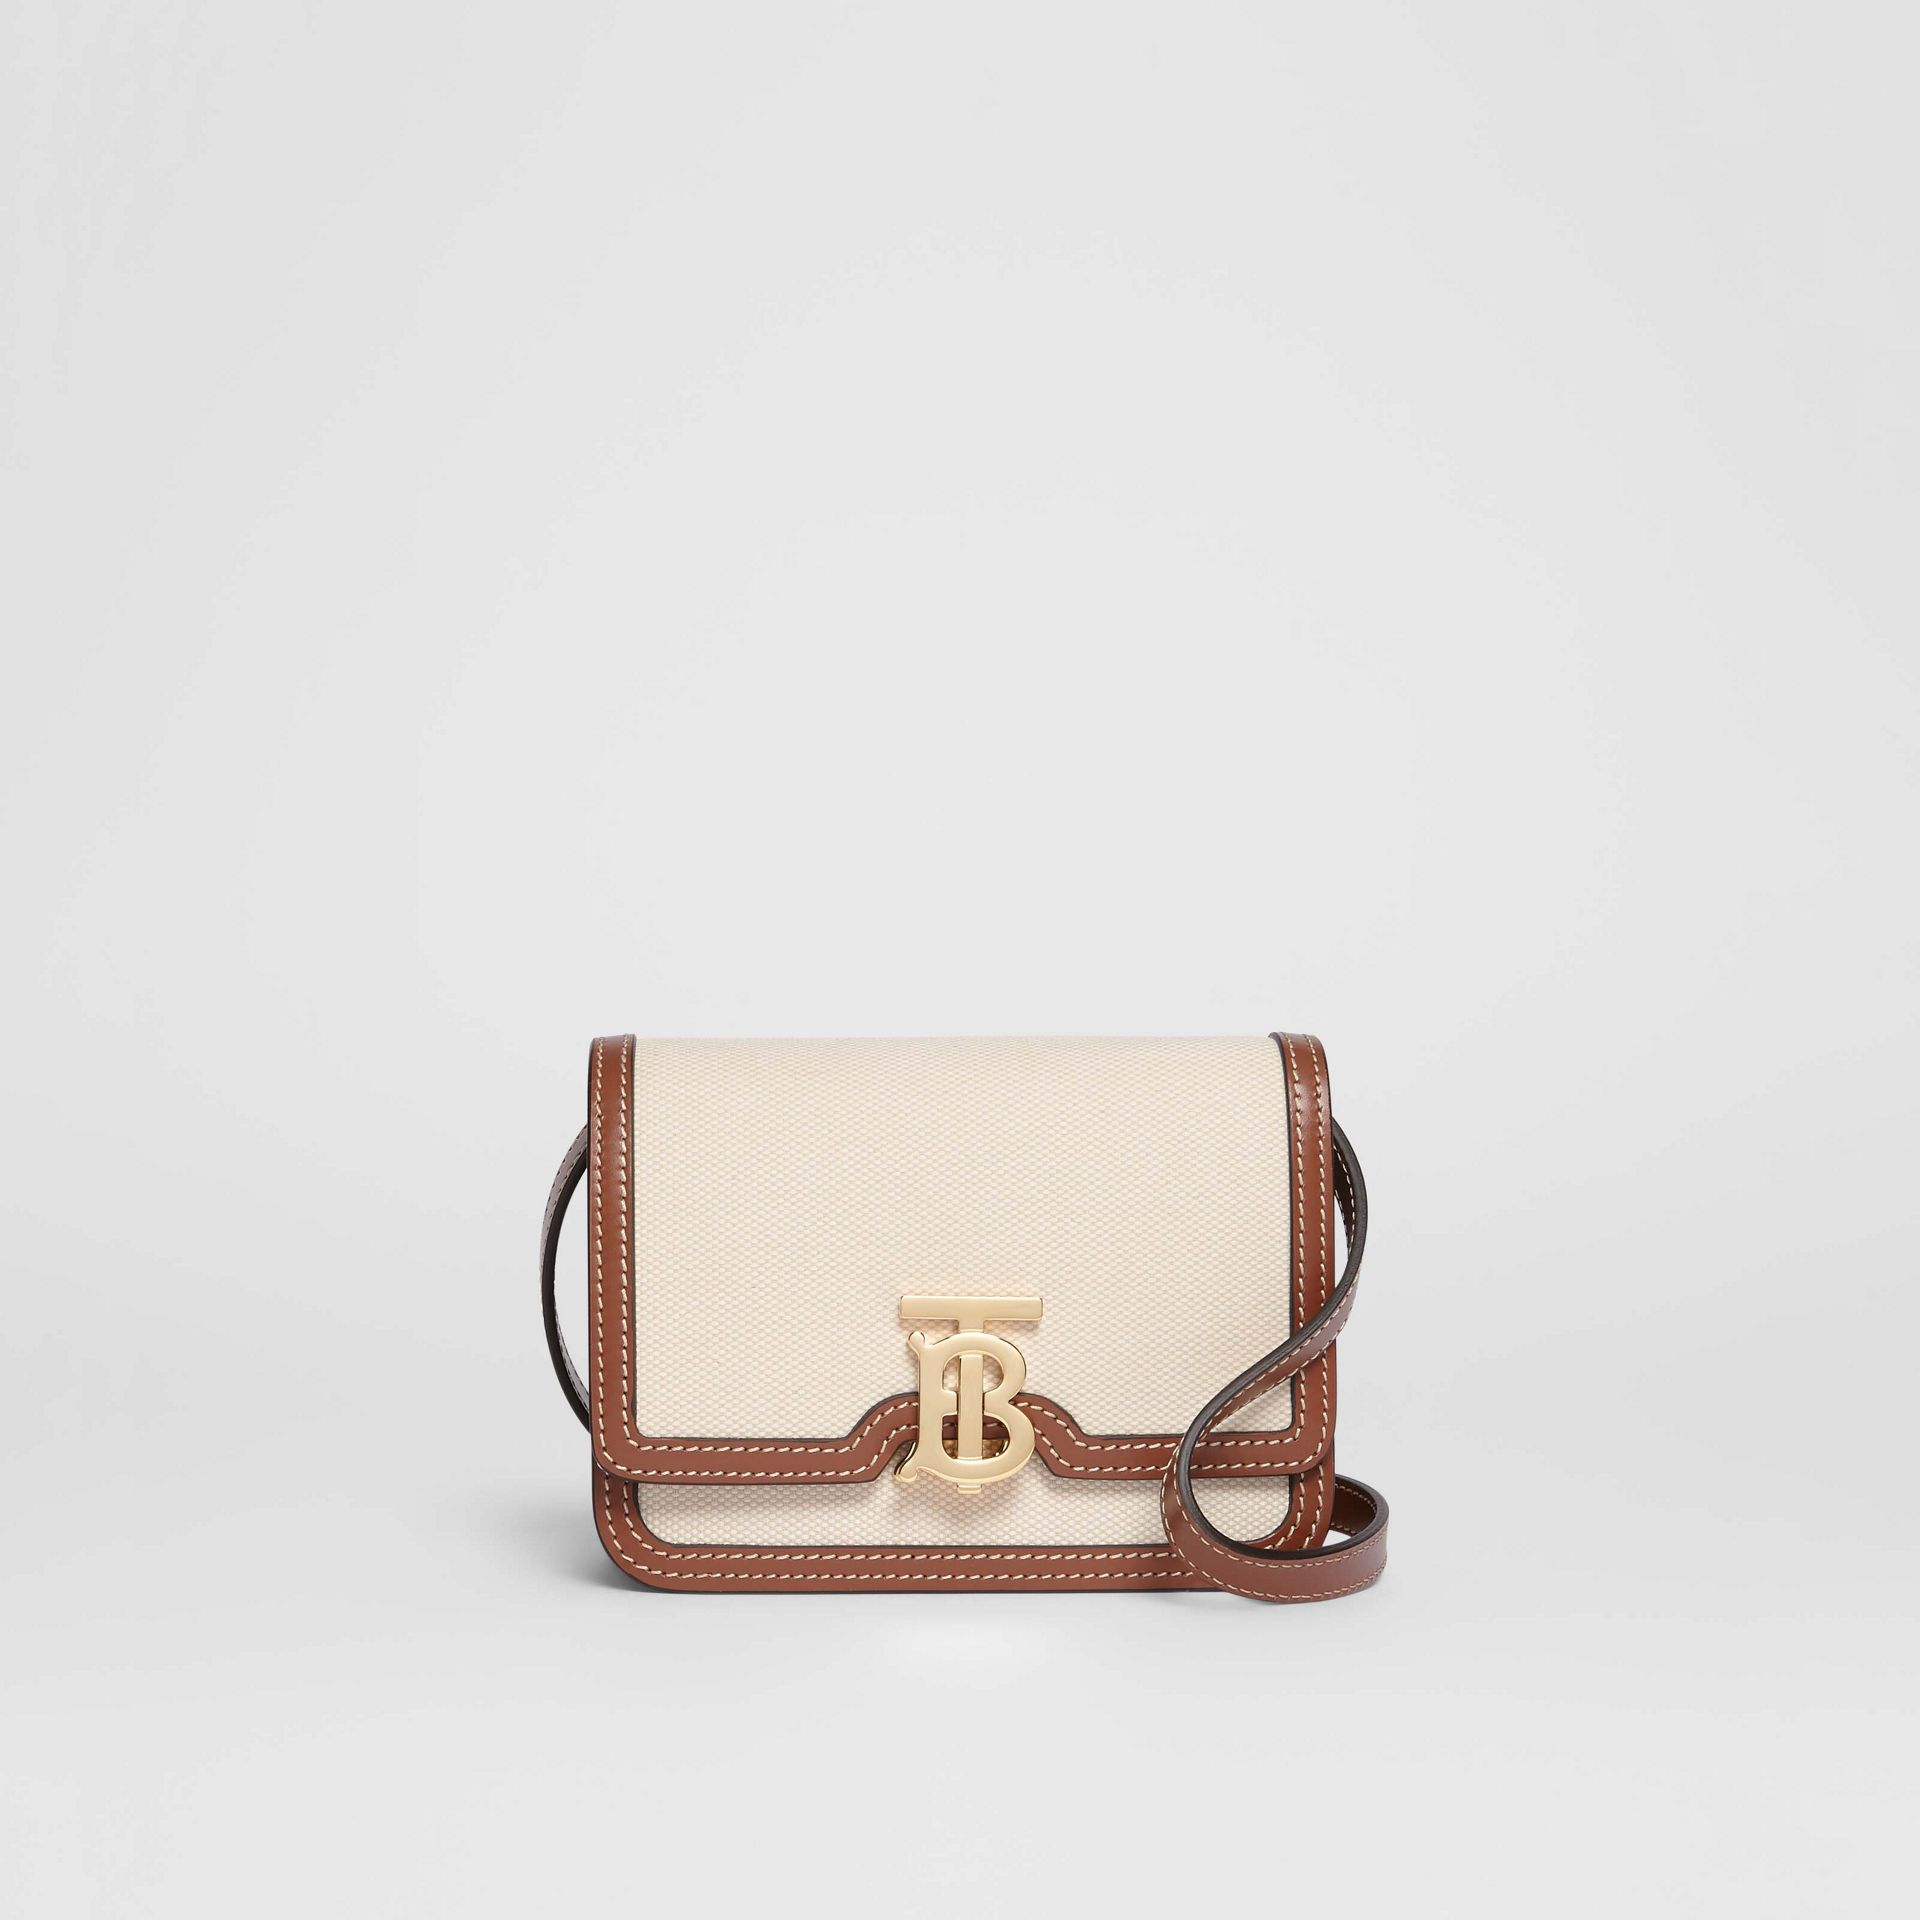 Mini Two-tone Canvas and Leather TB Bag in Natural/malt Brown - Women | Burberry Hong Kong S.A.R - gallery image 0